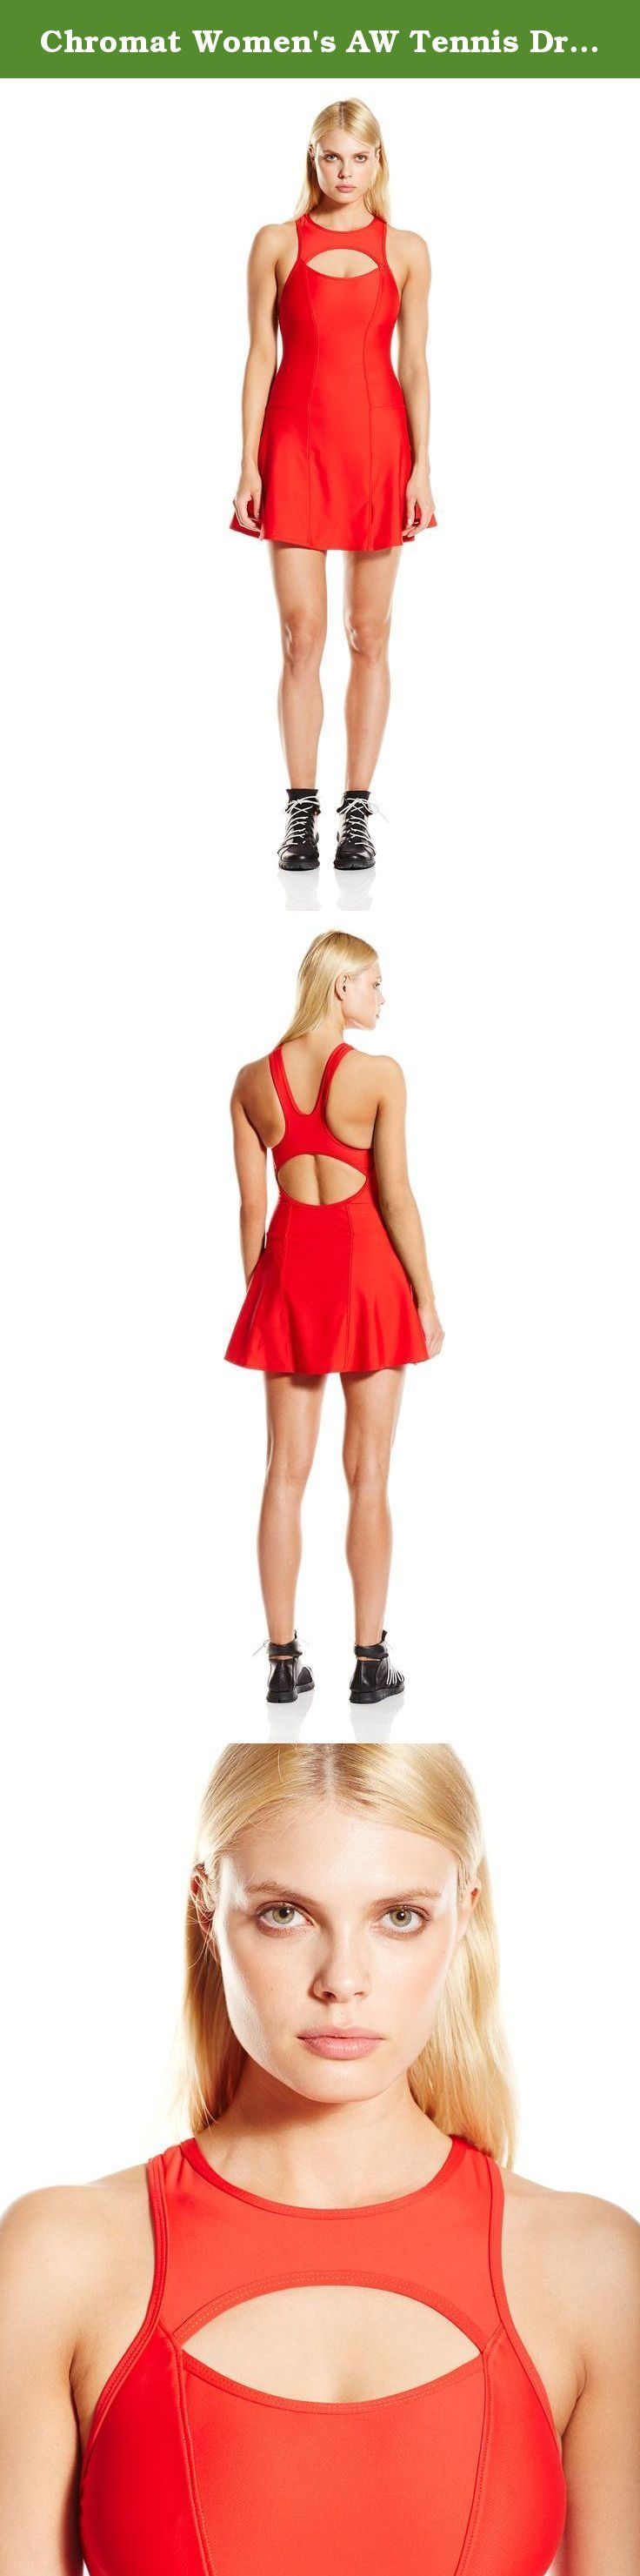 Chromat Women's AW Tennis Dress, Red, Small. Sleeveless tennis dress with keyhole cutouts at bodice and back waist.